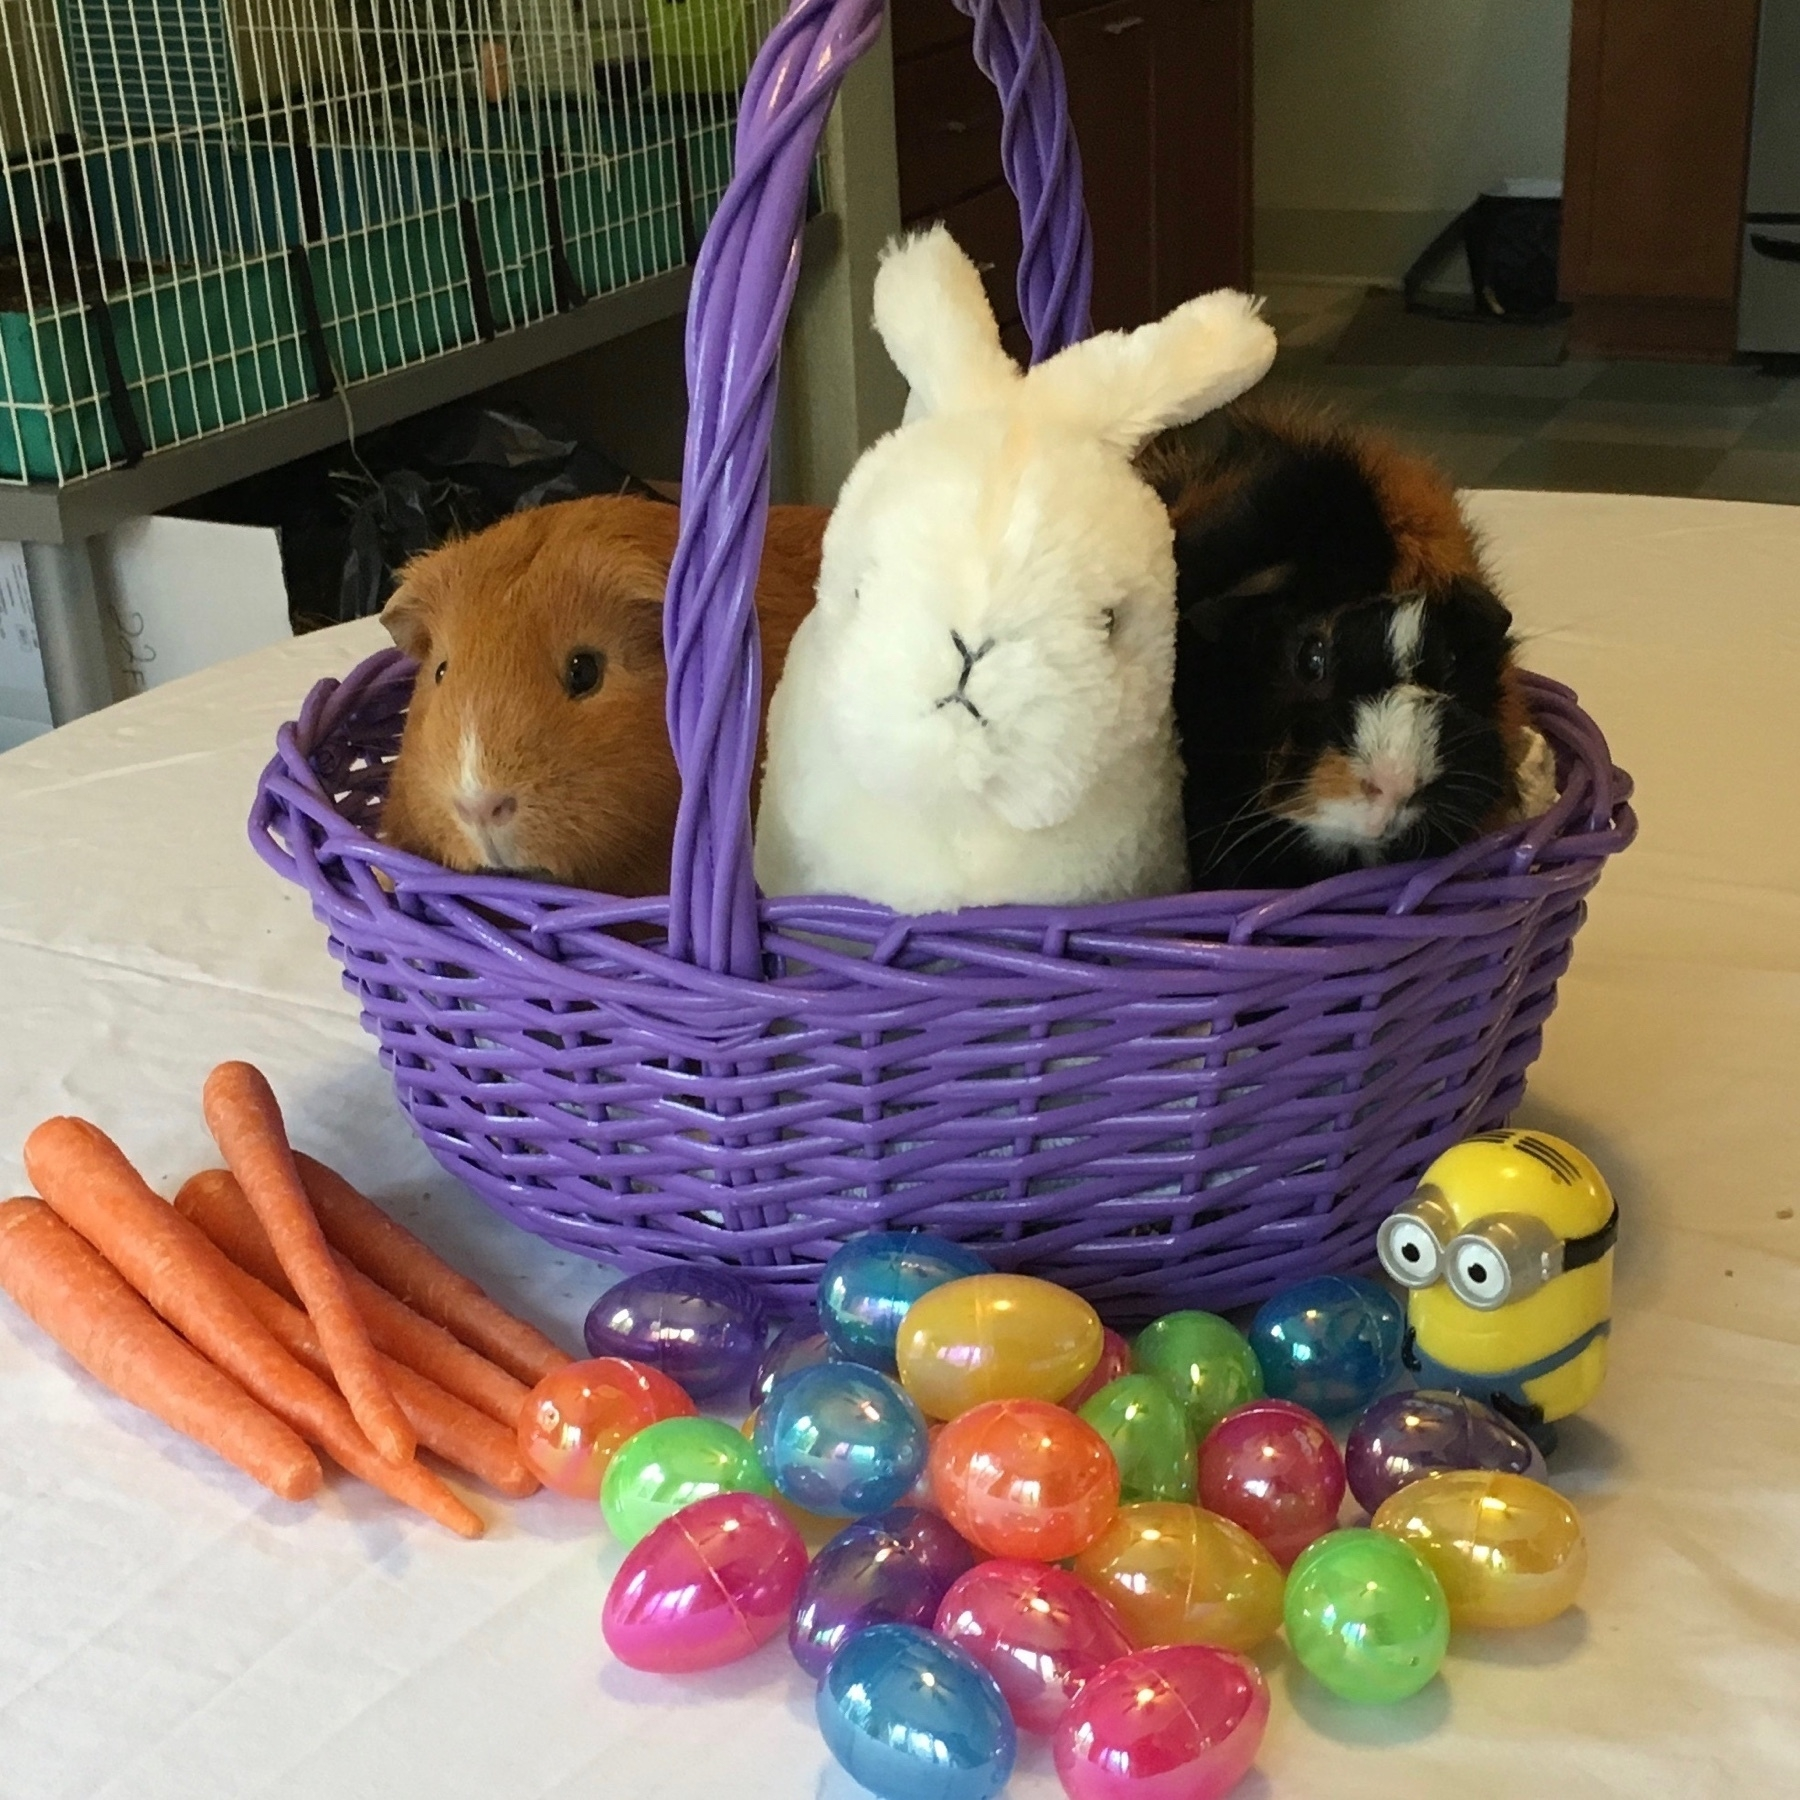 Two guinea pigs and a stuffed rabbit in a purple Easter basket, with carrots and plastic eggs.